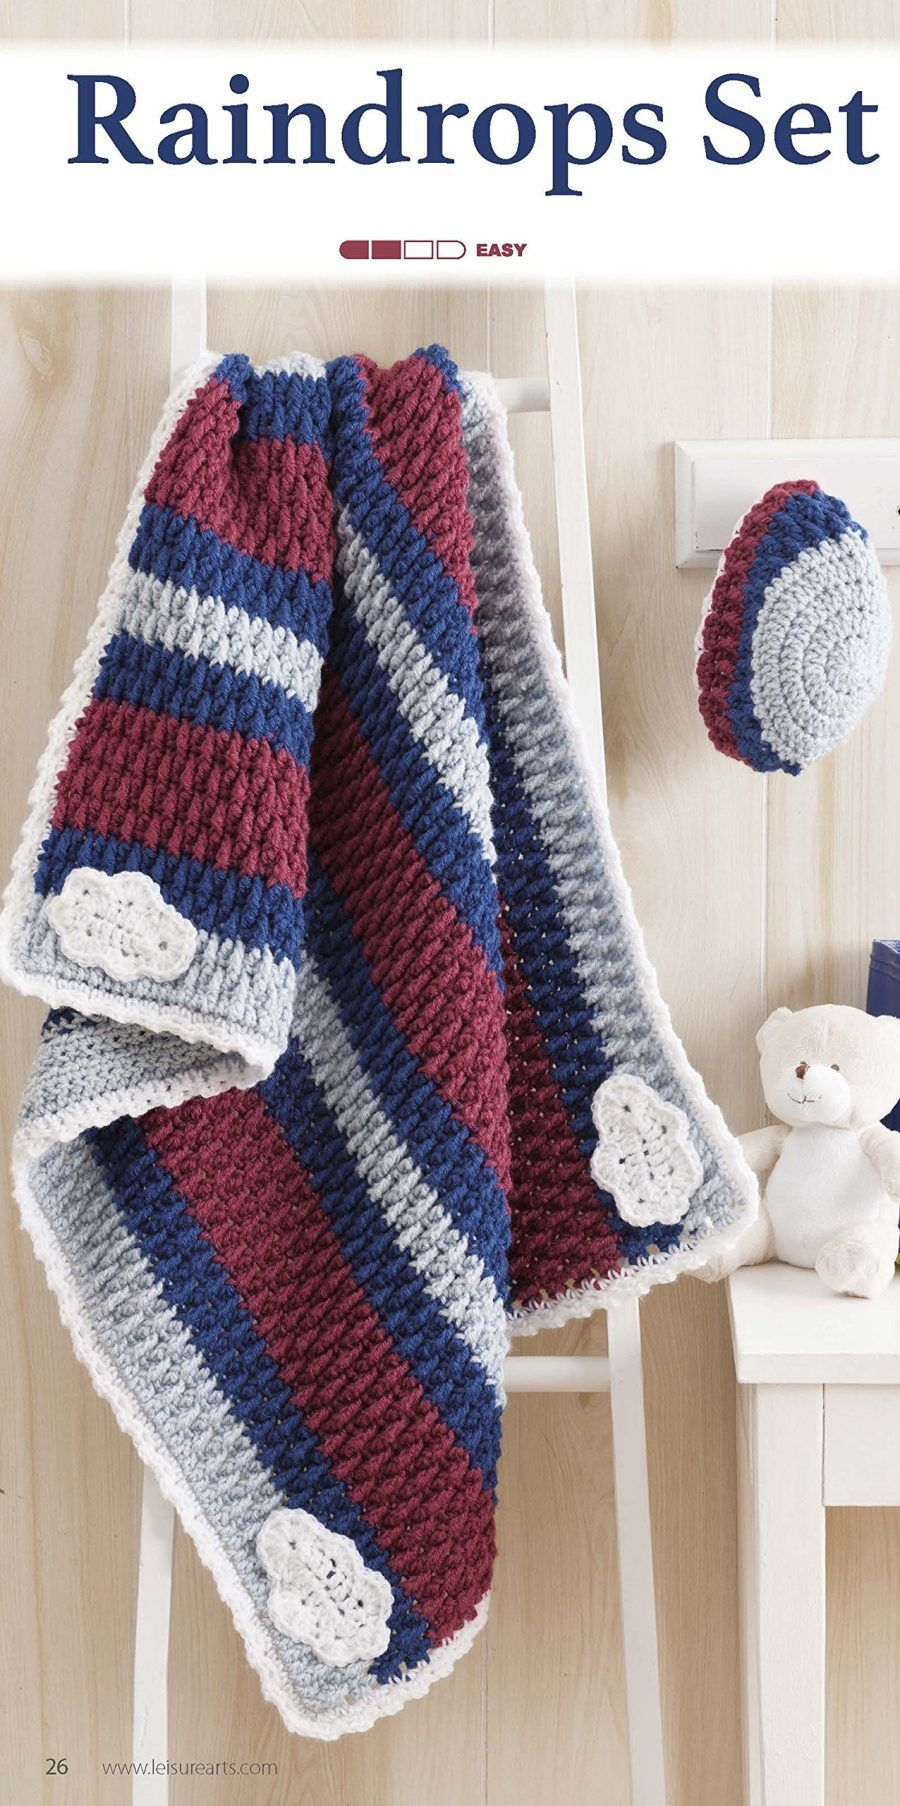 Nature's Gifts for Baby | Crochet Pattern - Matching baby blanket and hat -  rain drops